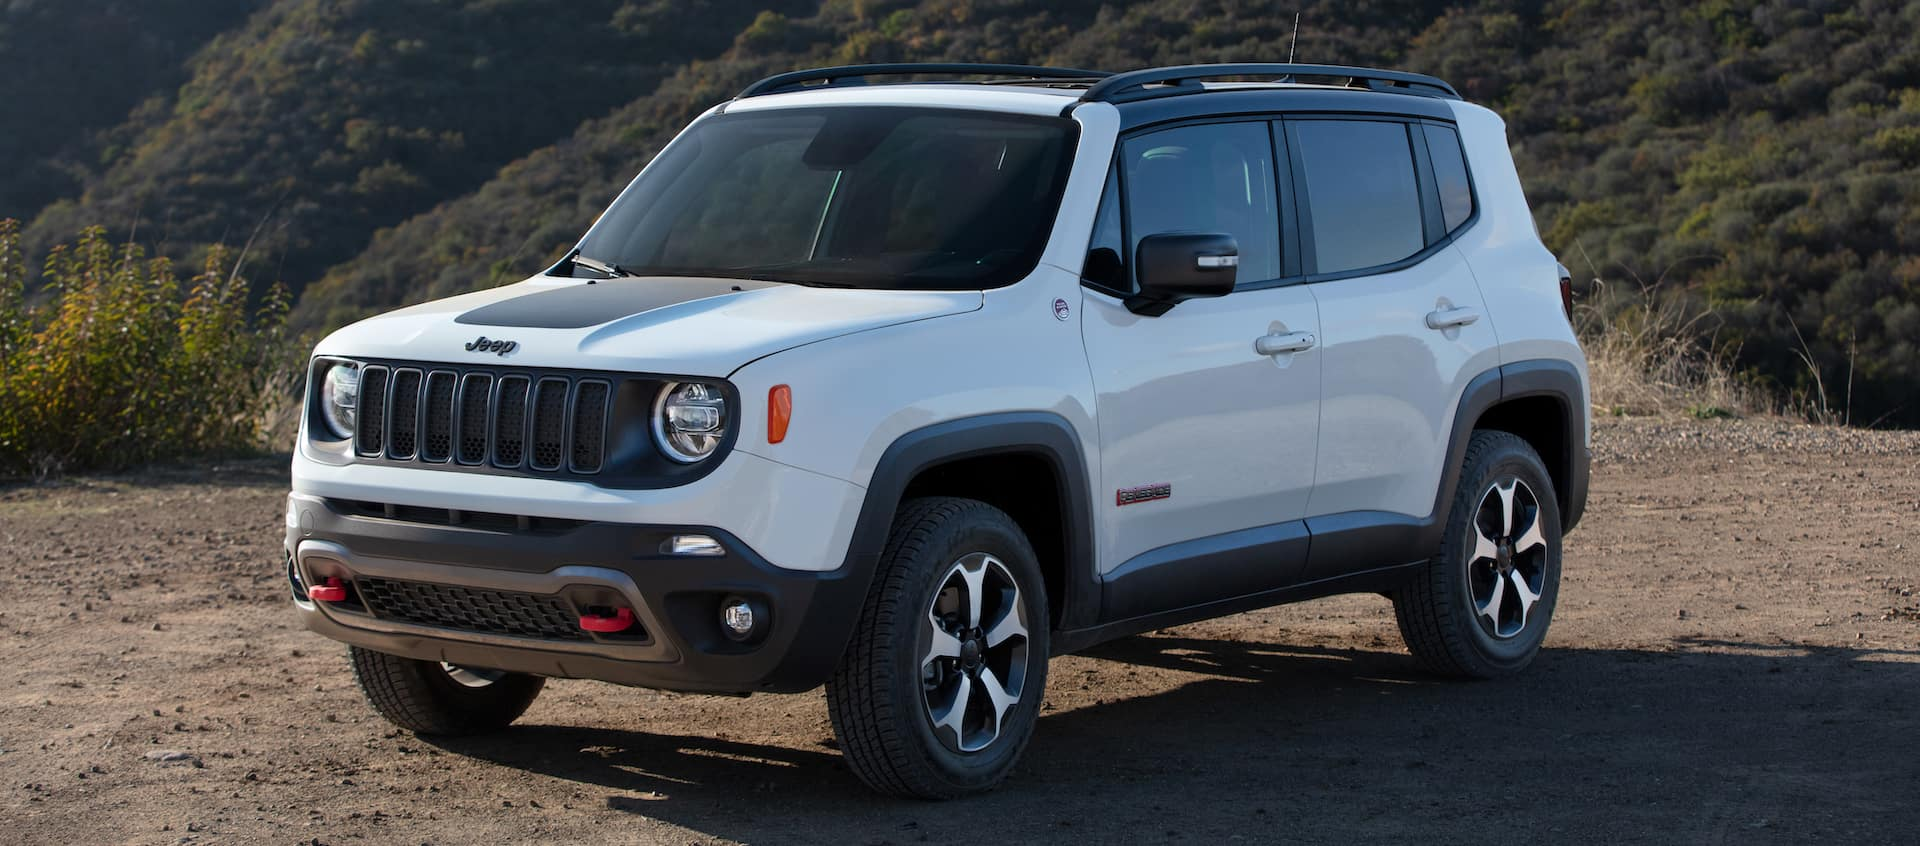 Compare the 2021 Jeep Renegade and the 2021 Chevrolet Equinox at Carolina CDJR in Elizabeth City, NC | 2021 Jeep Renegade parked on trail